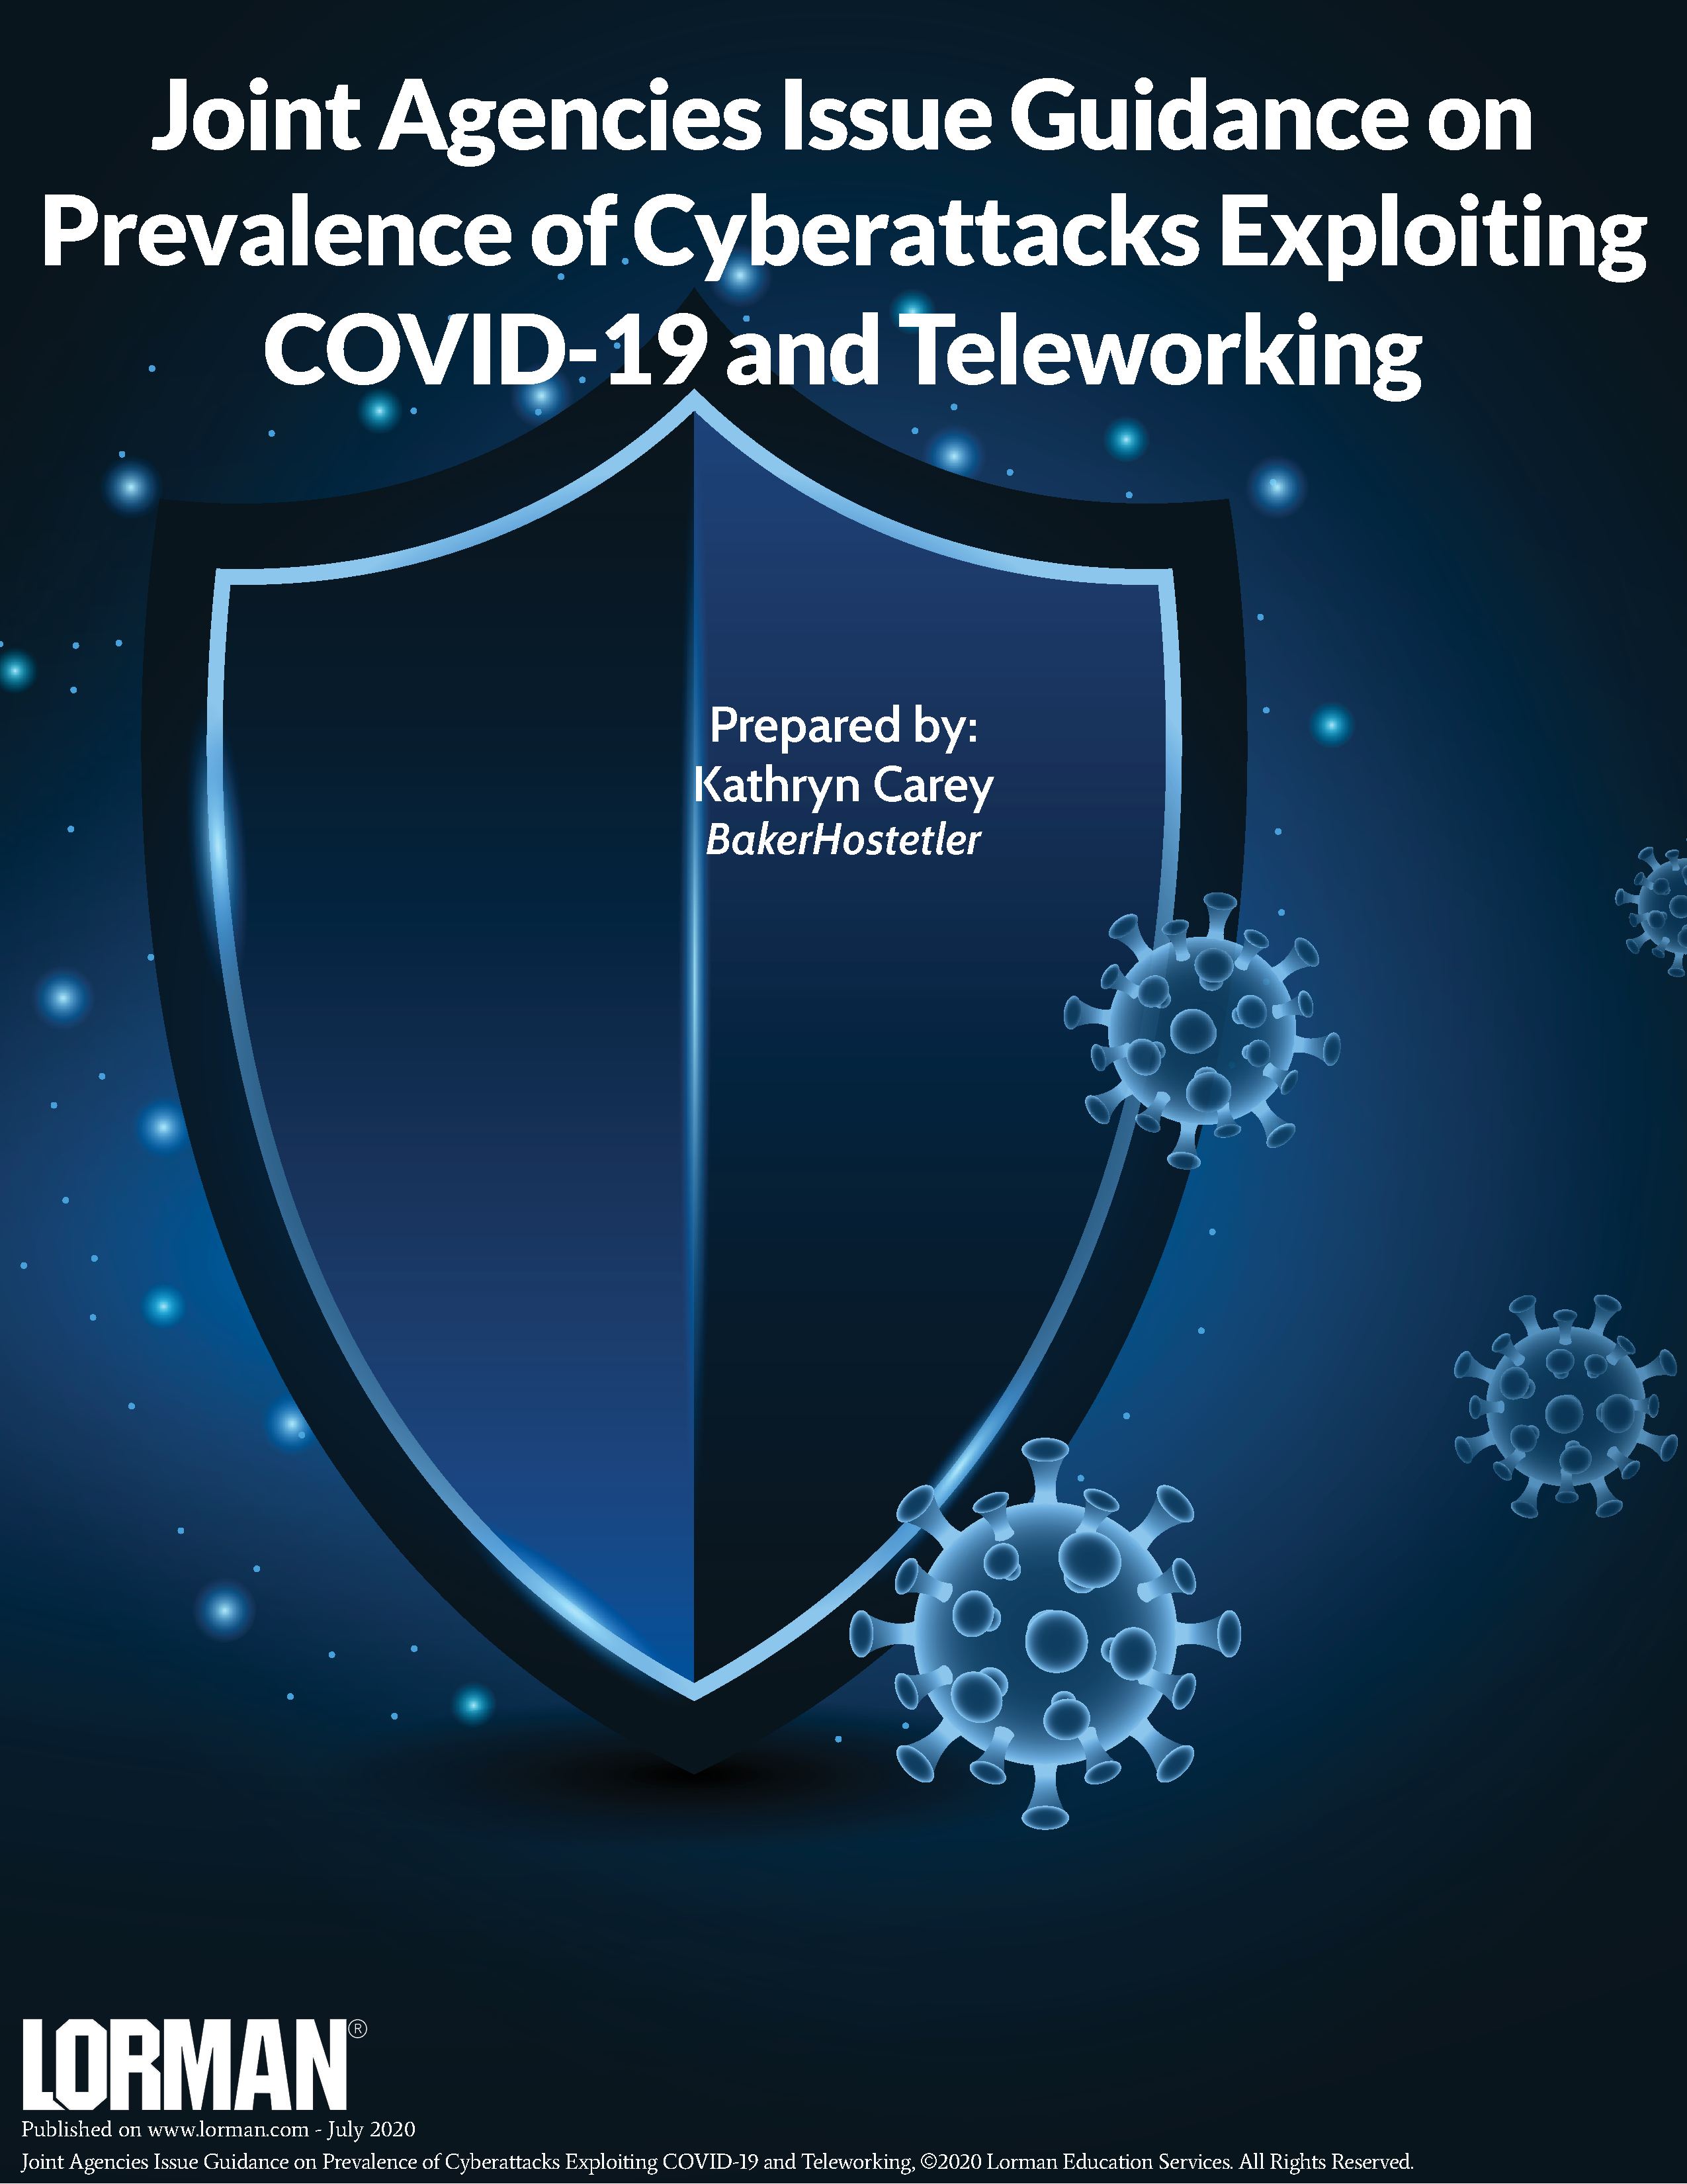 Joint Agencies Issue Guidance on Prevalence of Cyberattacks Exploiting COVID-19 and Teleworking